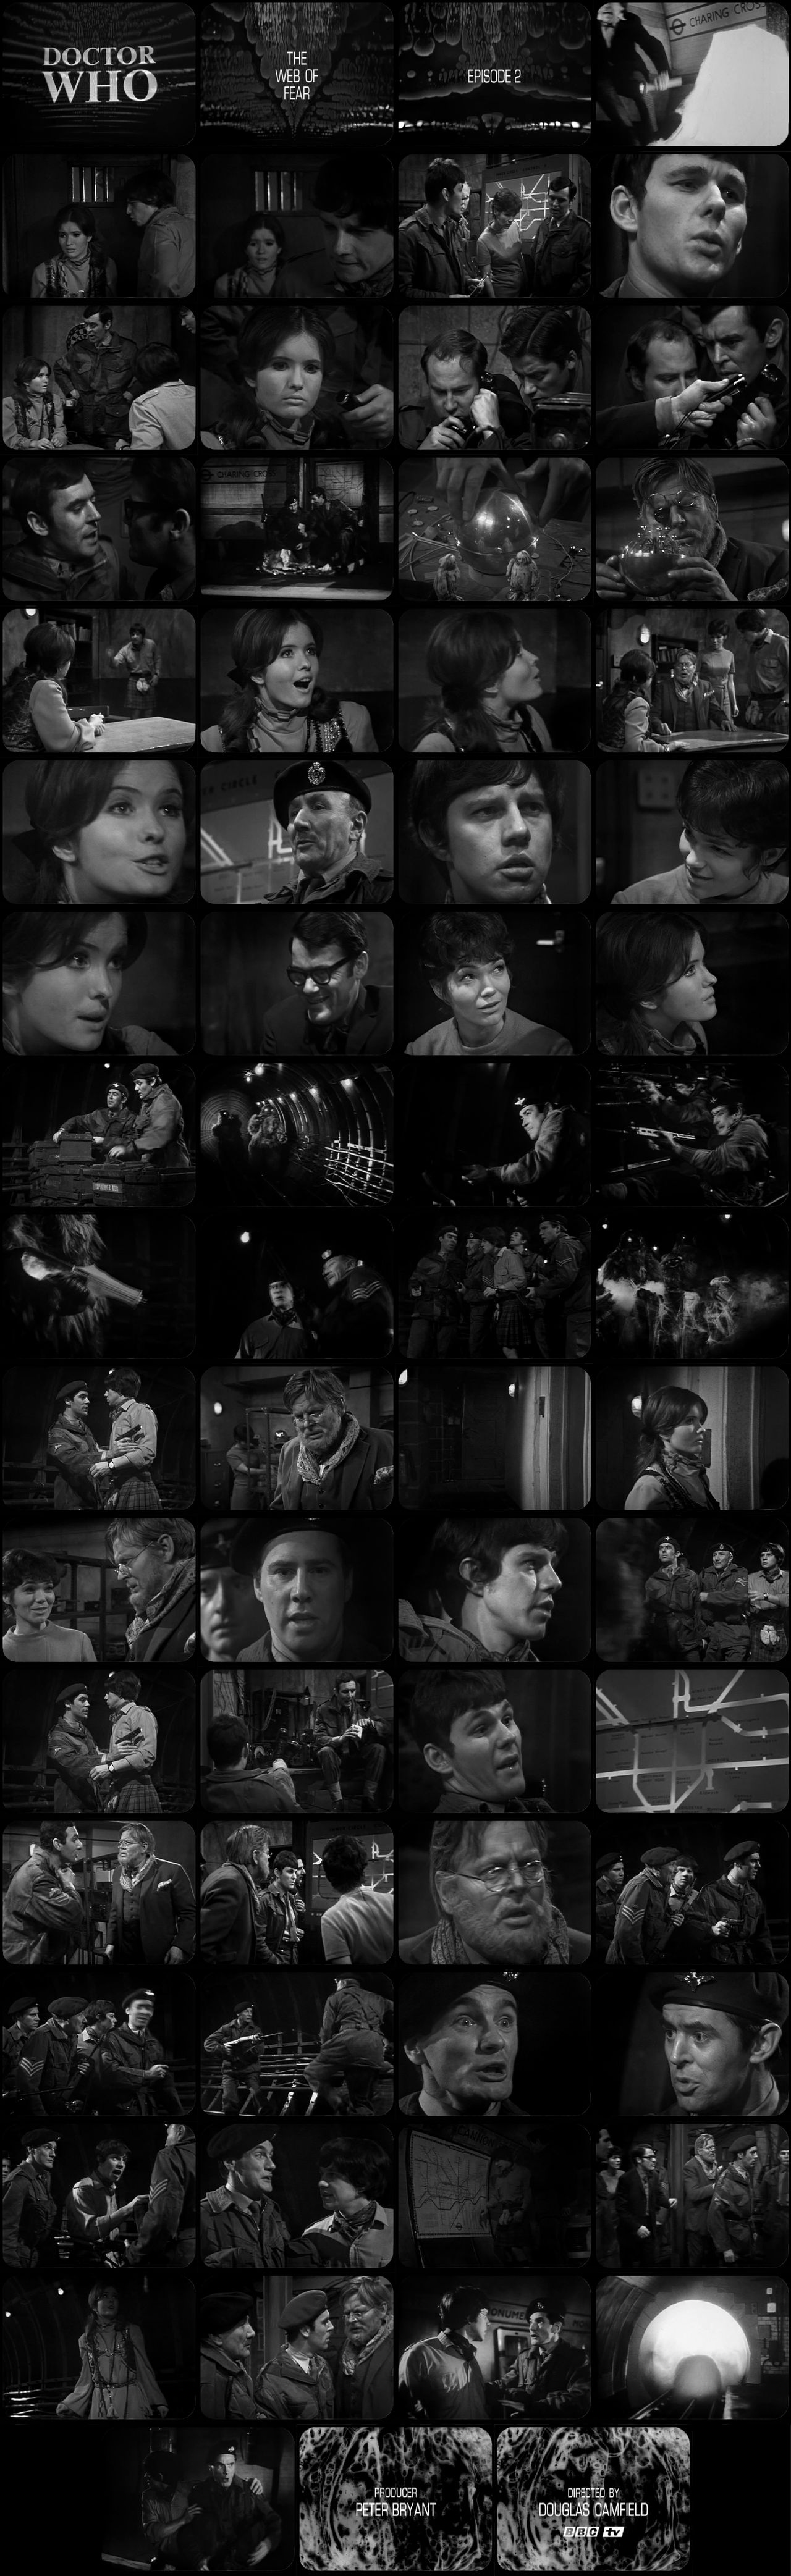 The Web of Fear Episode 2 Tele-Snaps